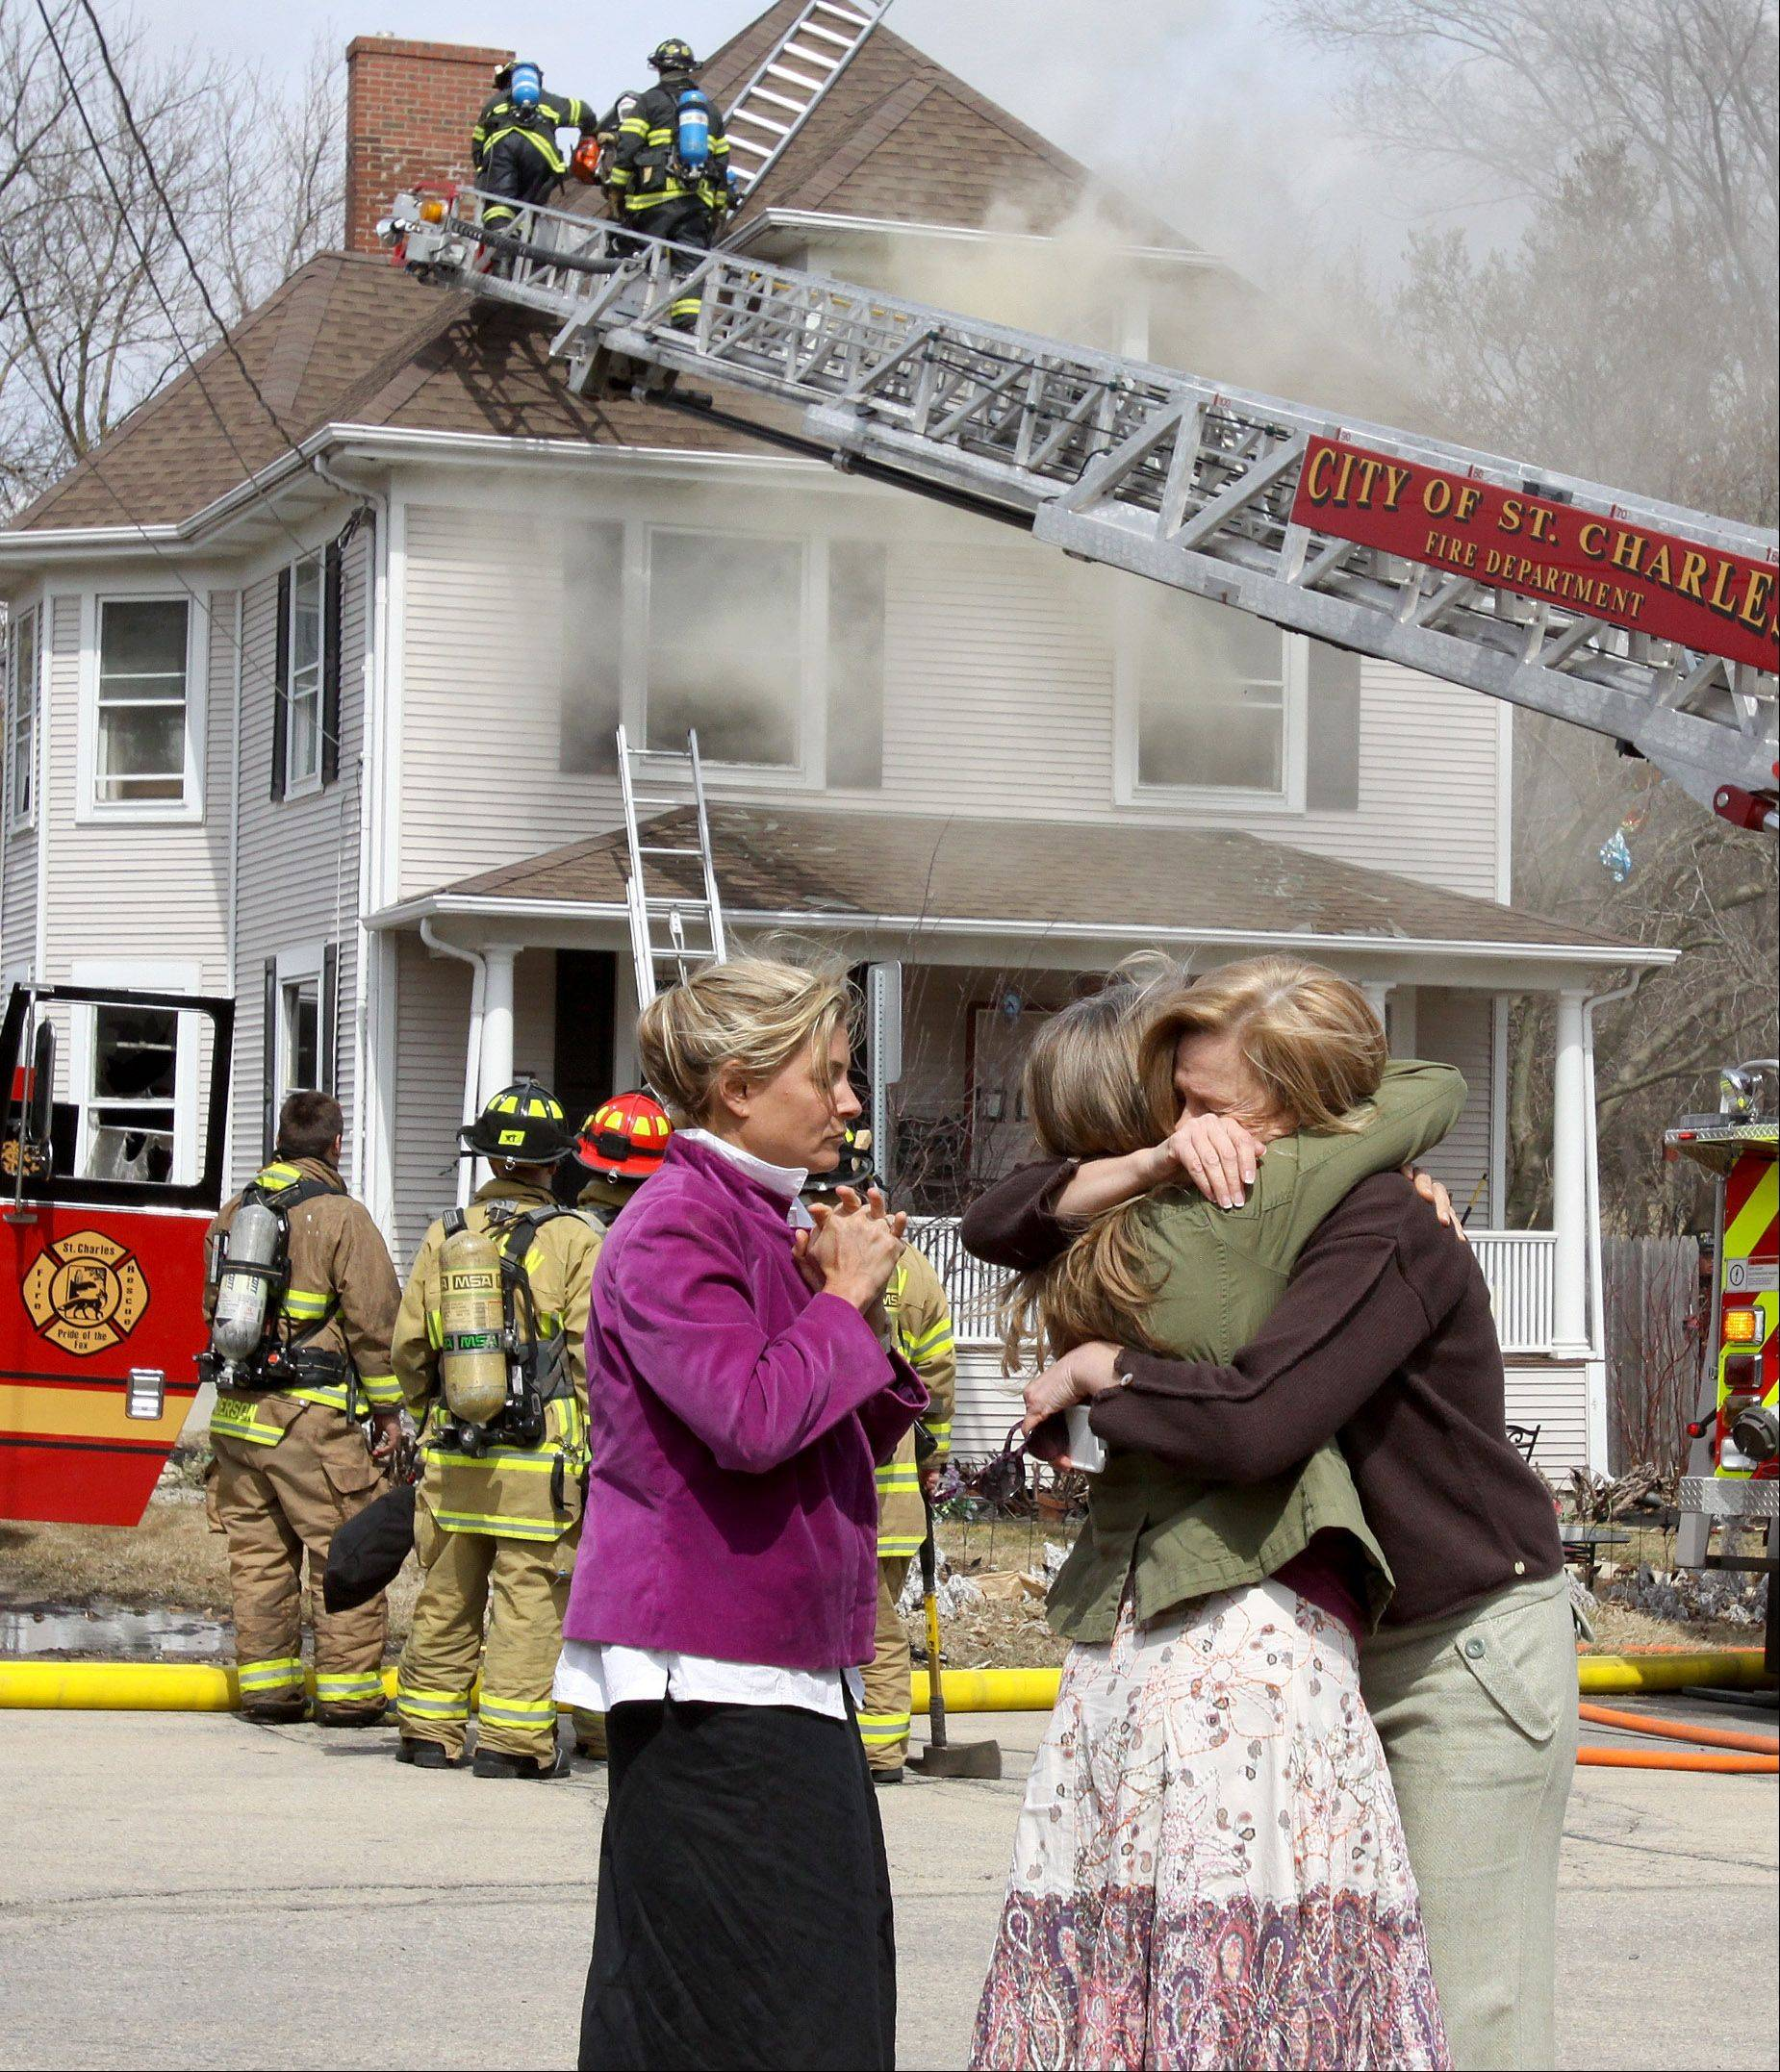 The homeowner, right, is comforted by friends as firefighters battle a fire at her house and business in the 600 block of State Avenue in St. Charles on Sunday.